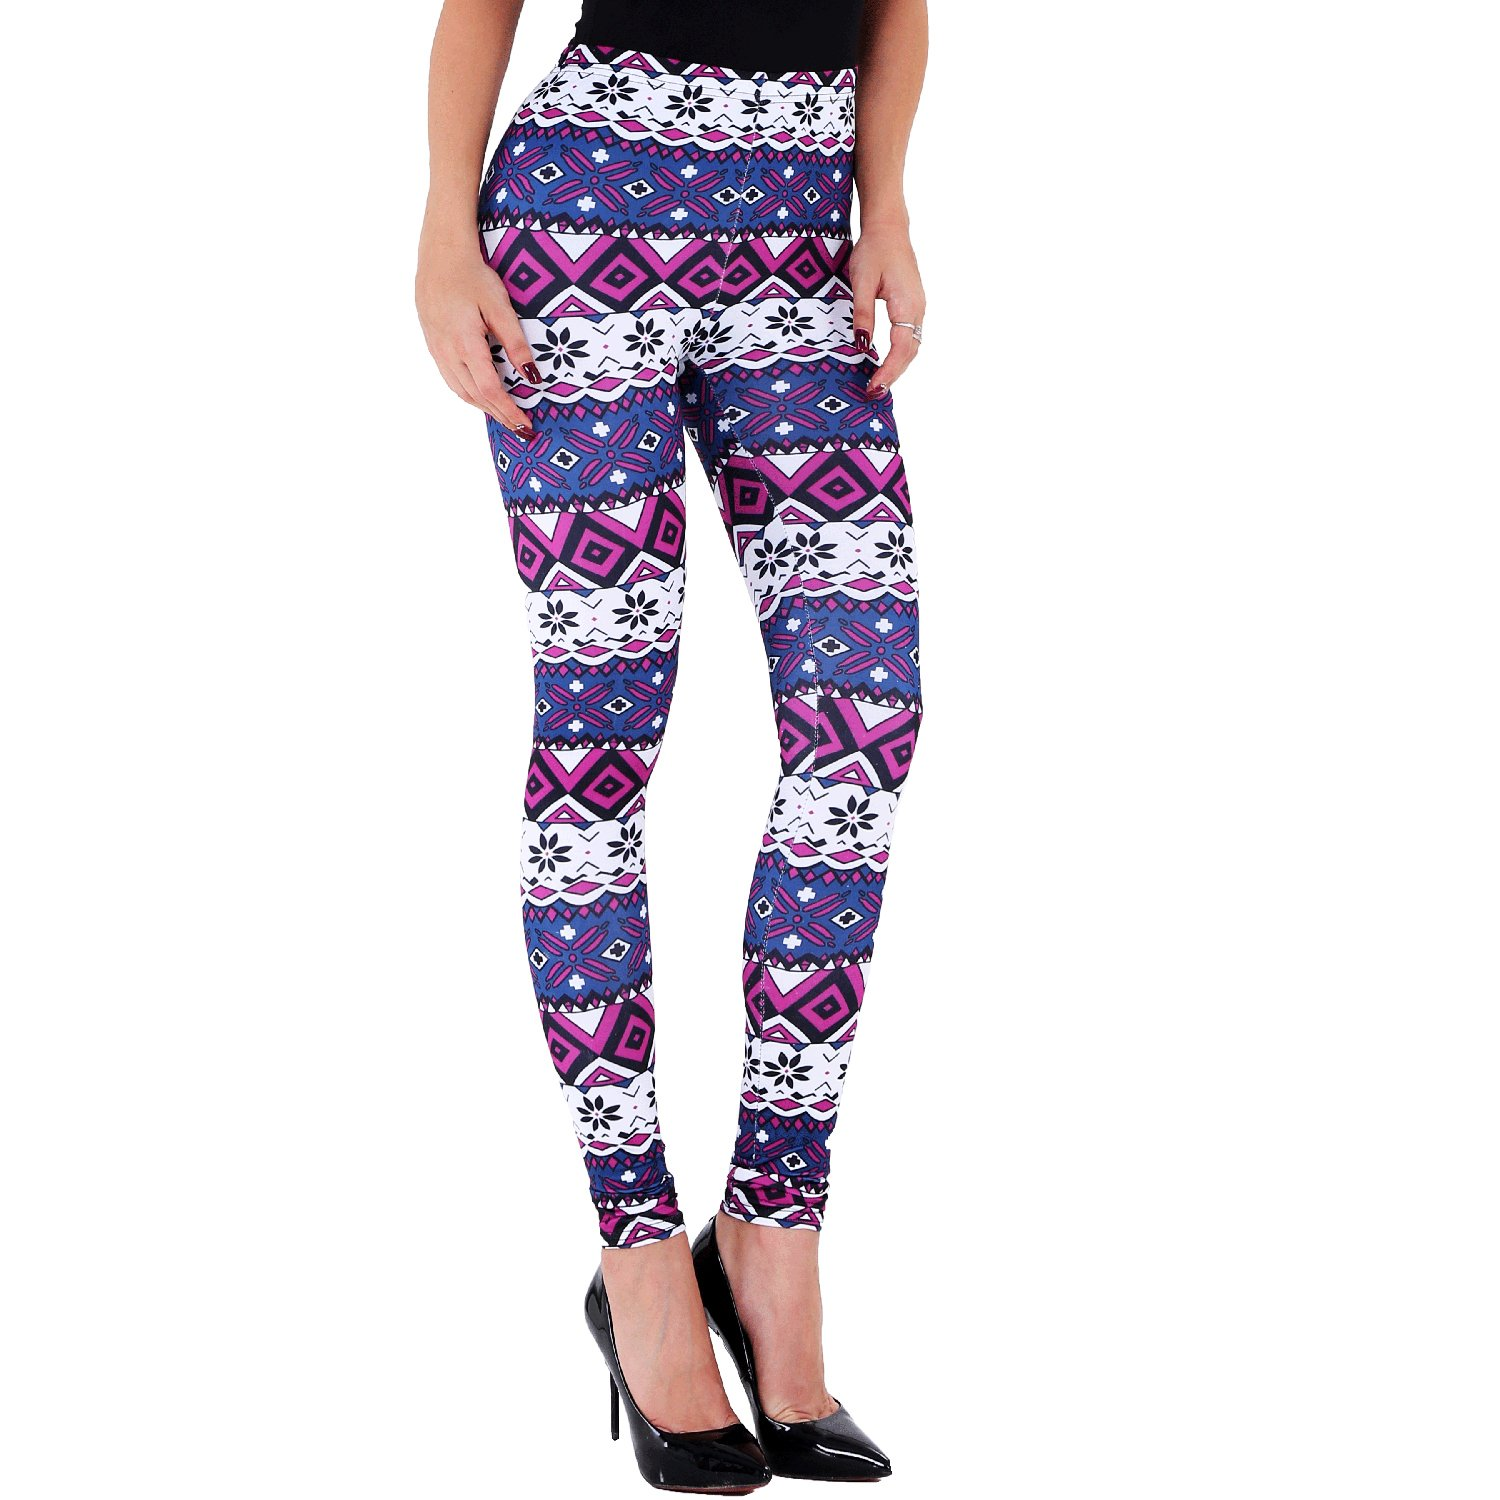 Purple Ensasa Womens Autumn Winter Snowflake Graphic Printed Stretchy Leggings Pants